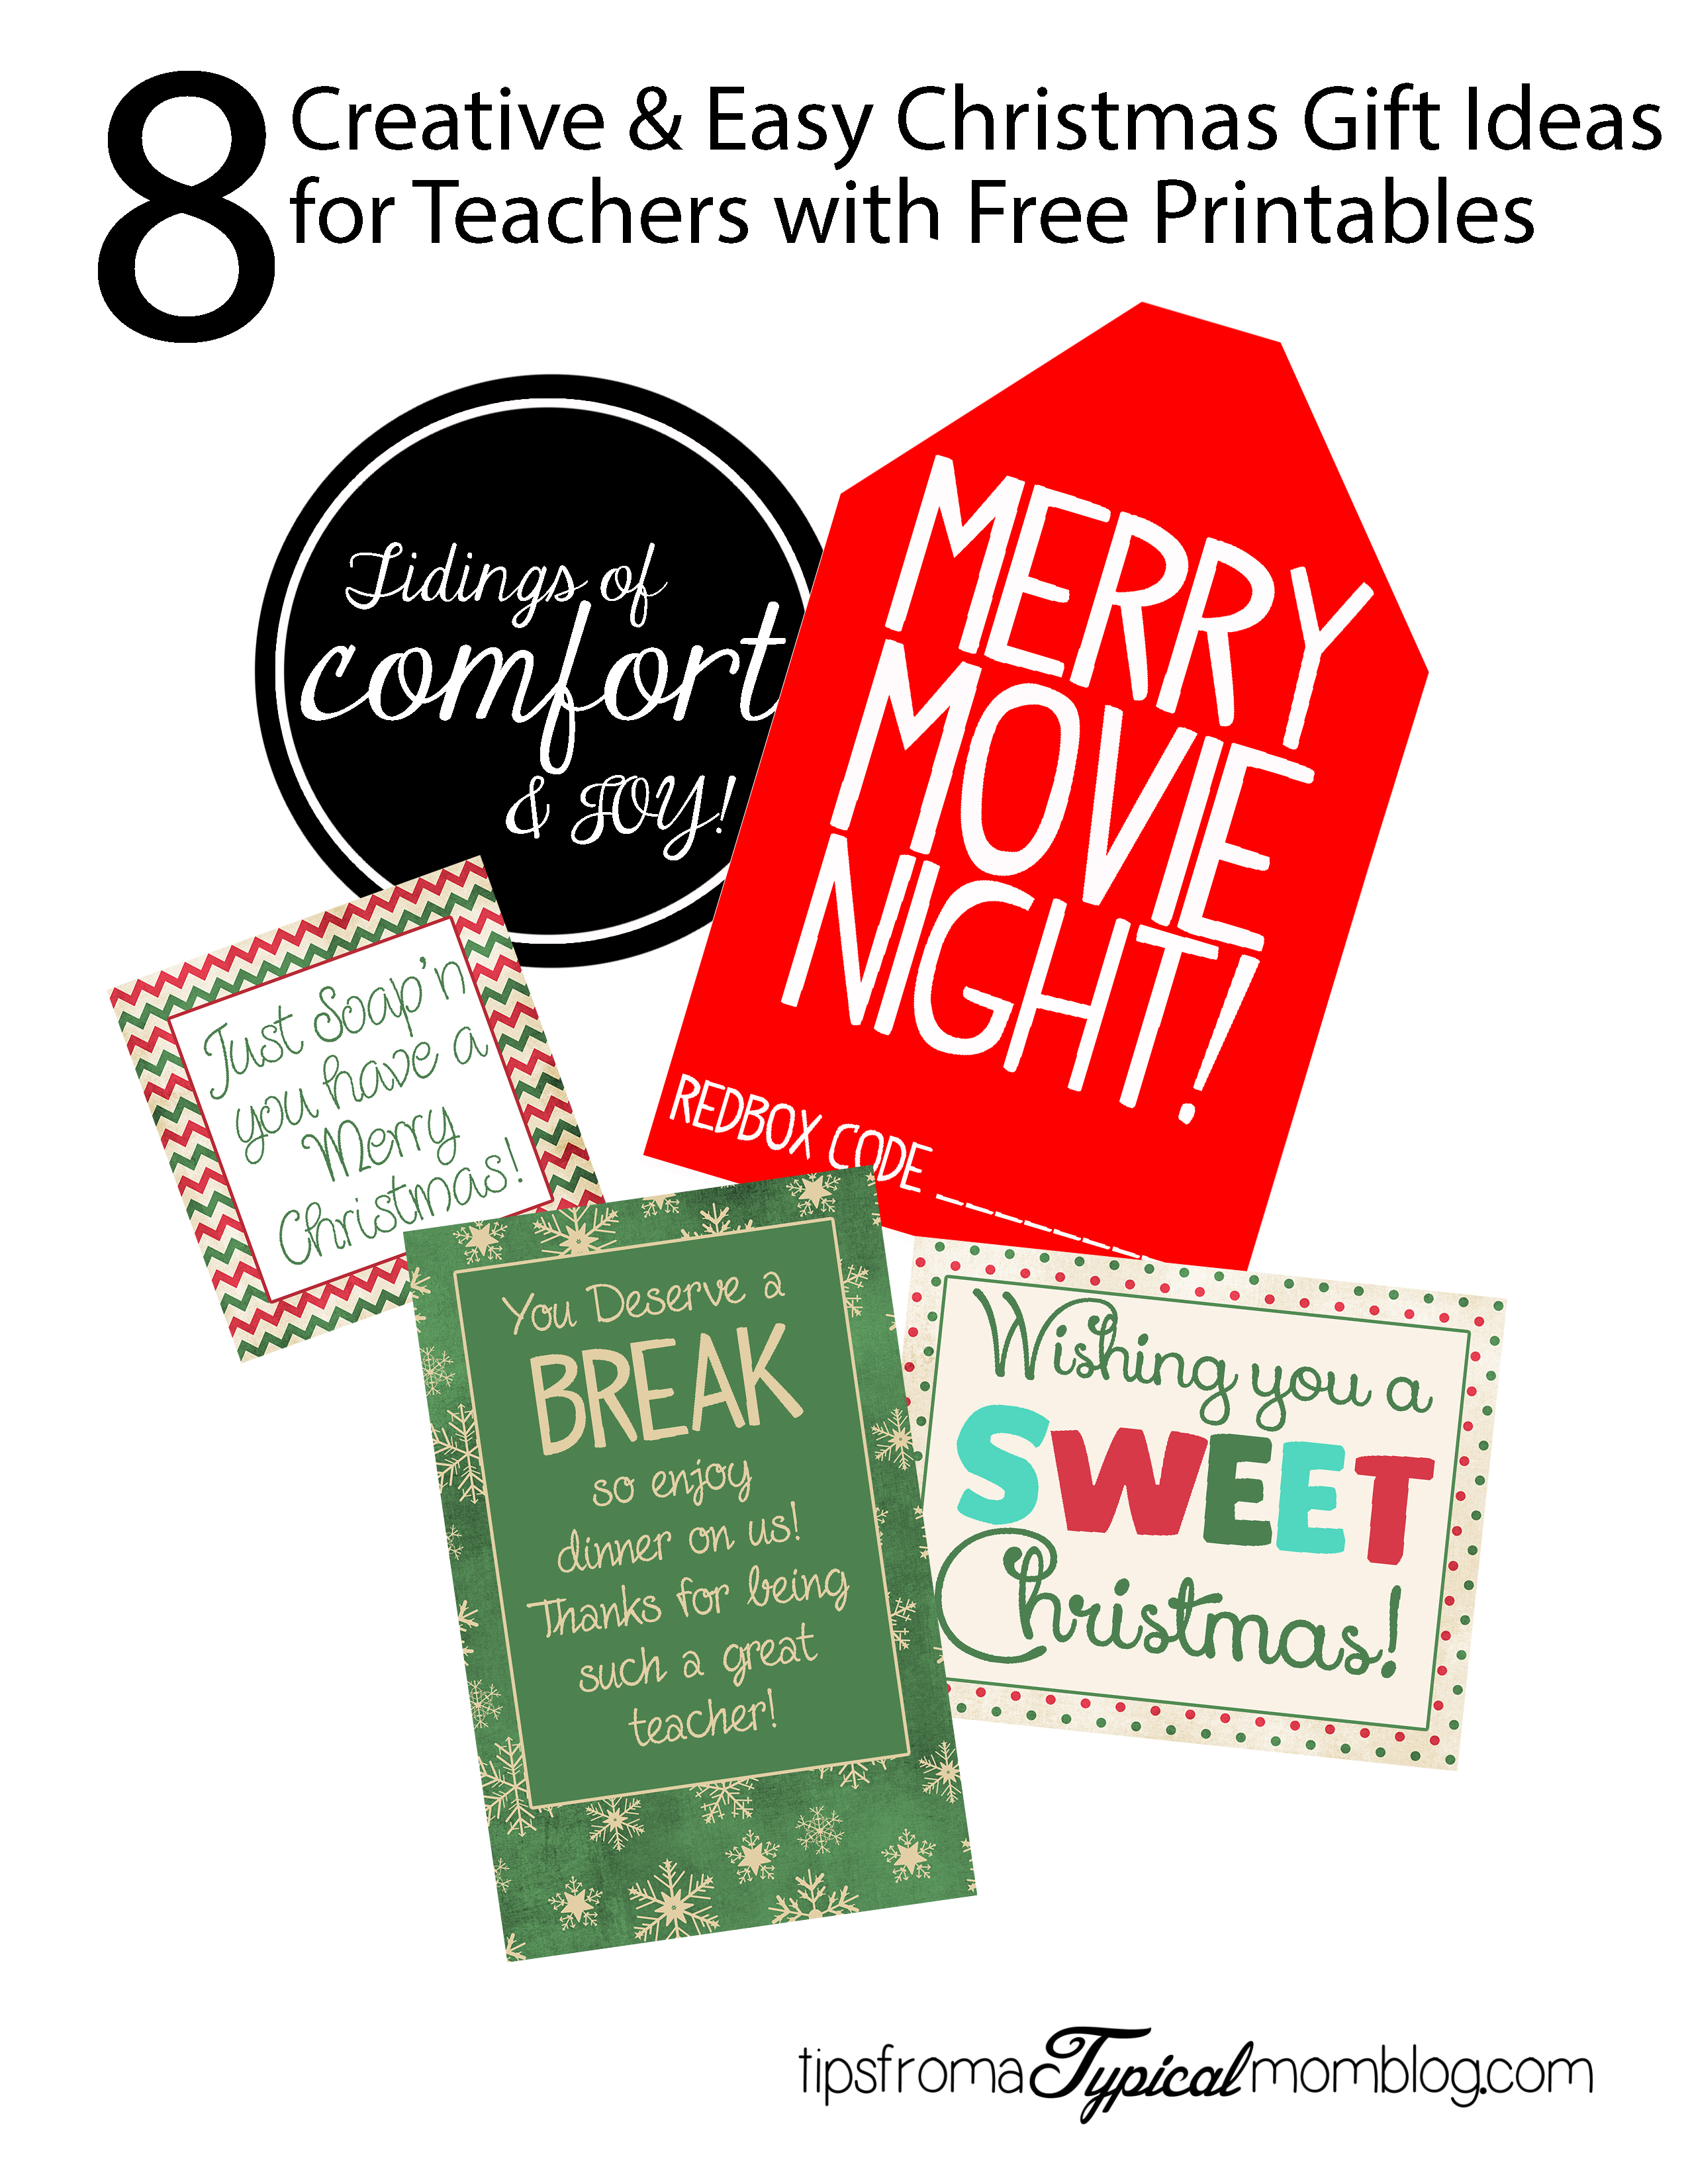 graphic relating to Printable Gift Tags Christmas known as 8 Straightforward and Very simple Trainer Xmas Reward Suggestions with Printable